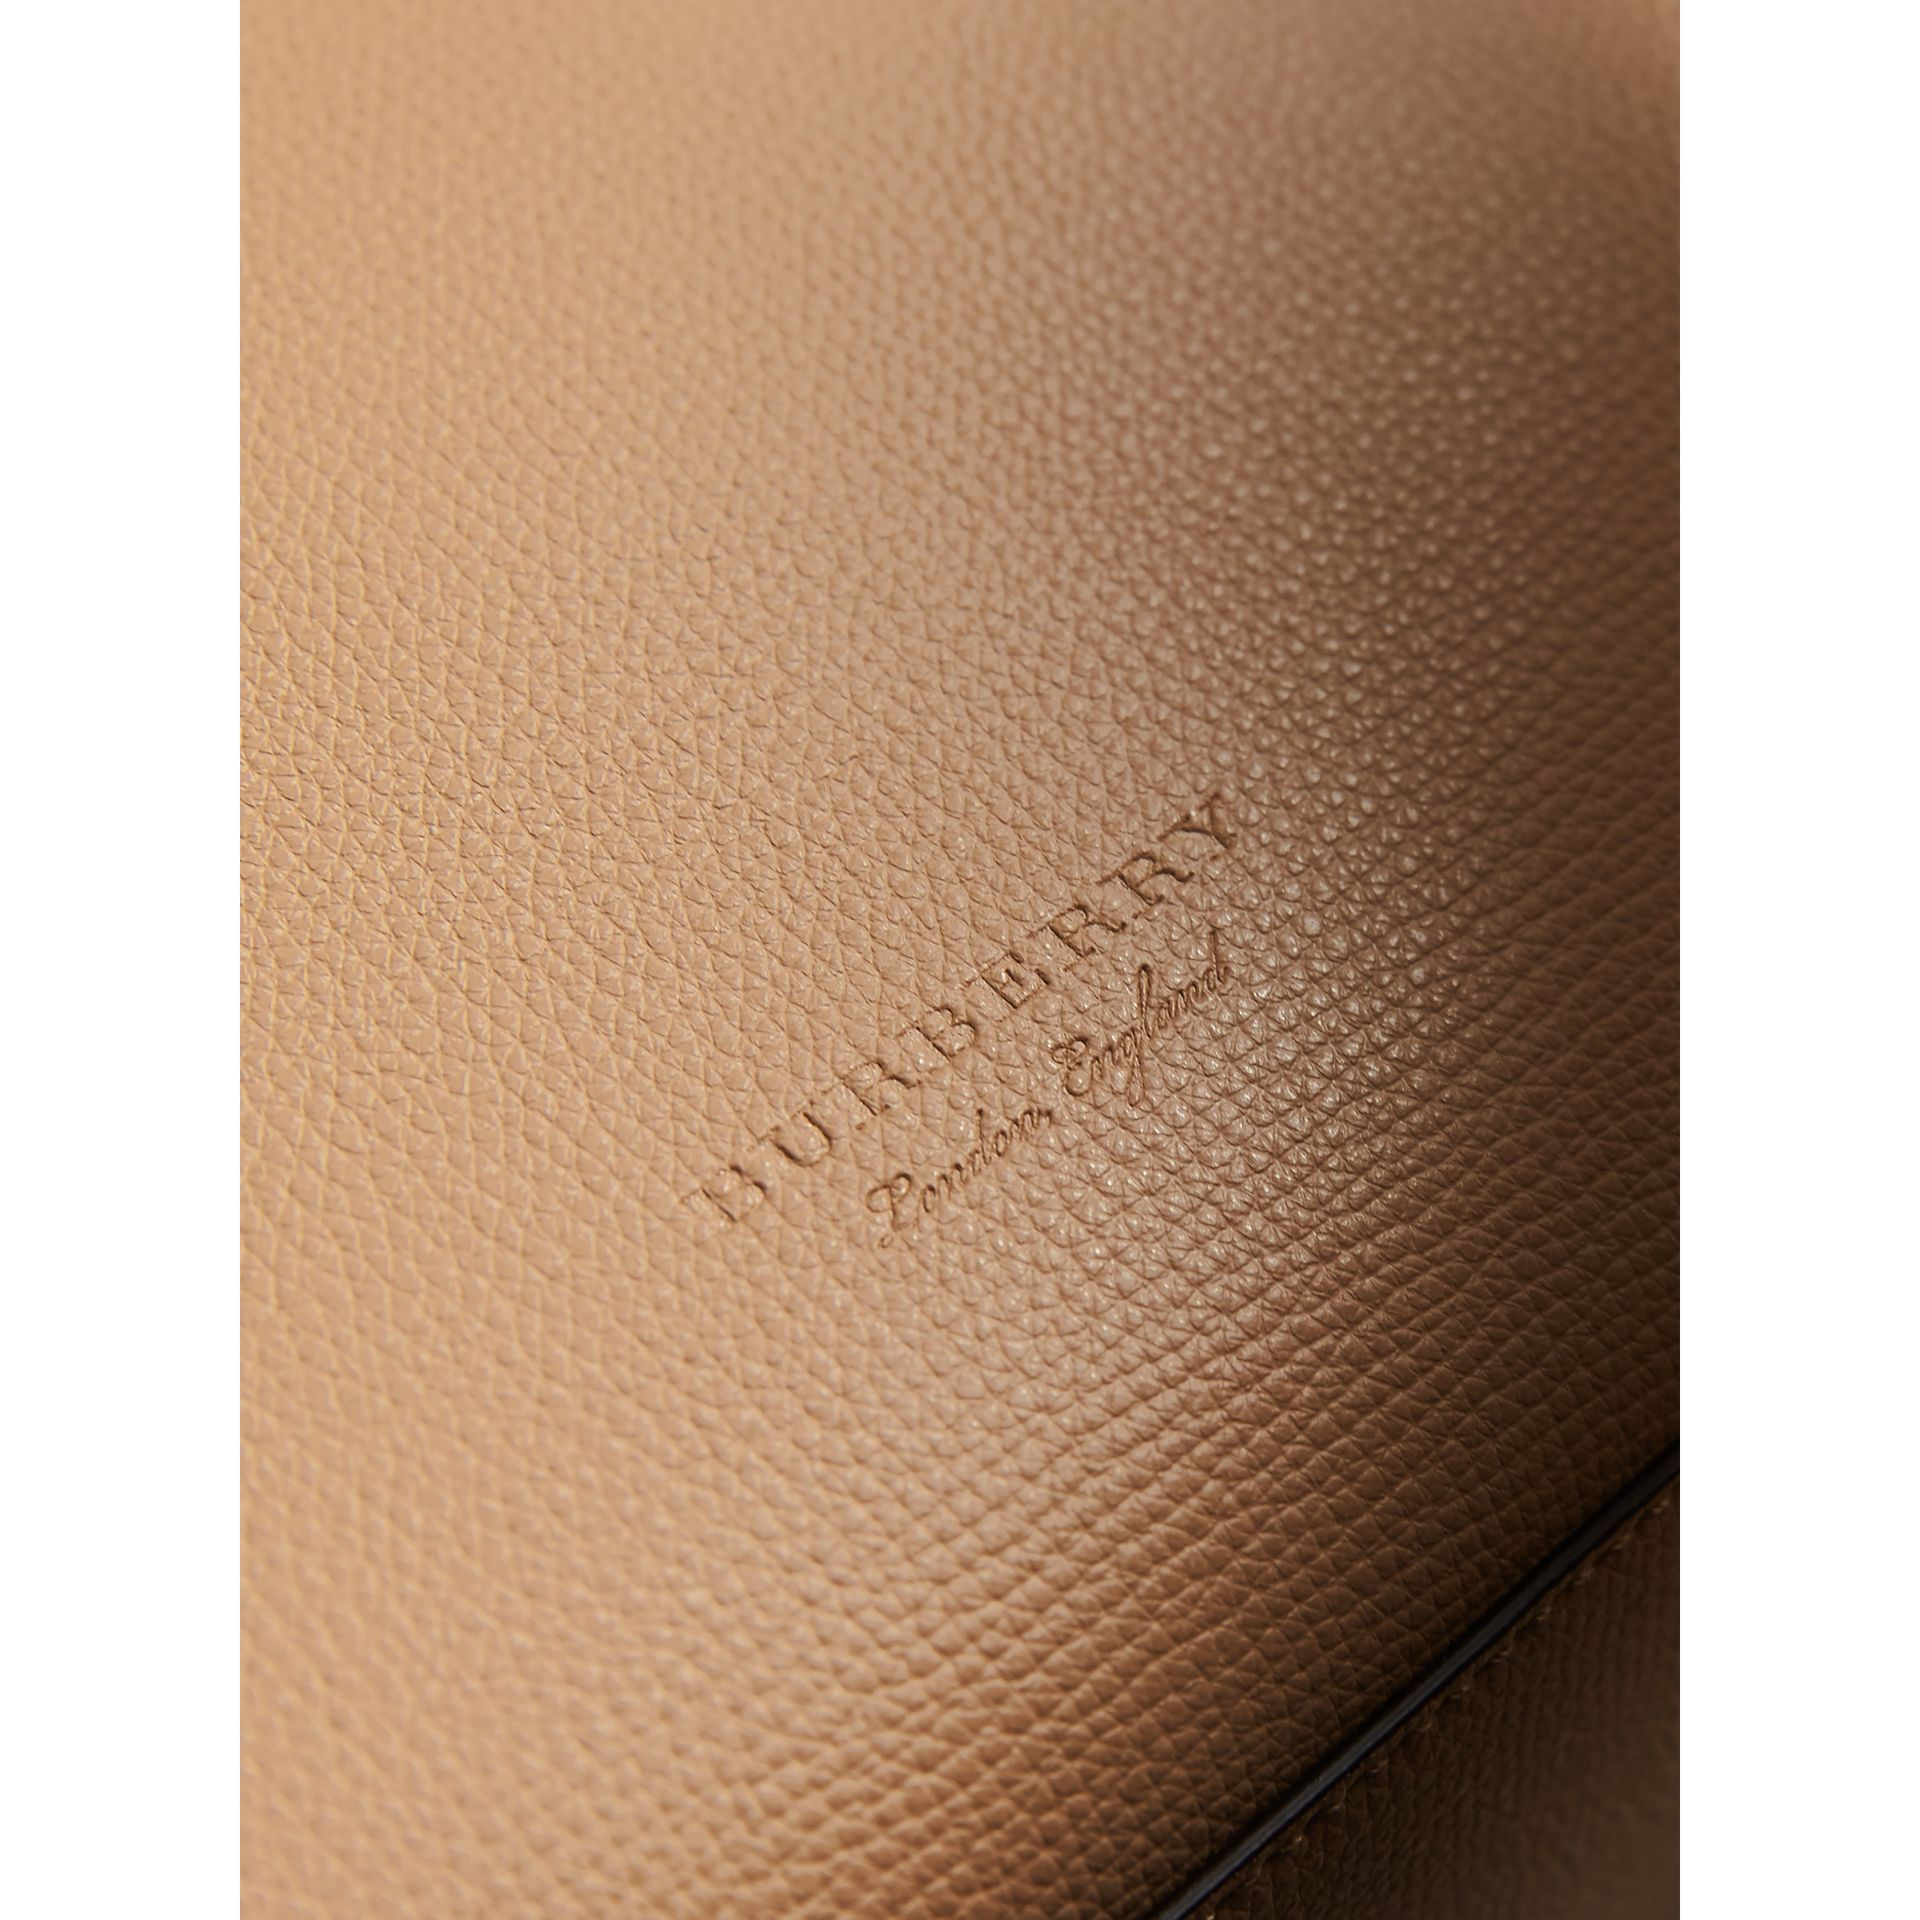 Medium Coated Leather Tote in Mid Camel - Women | Burberry - gallery image 5